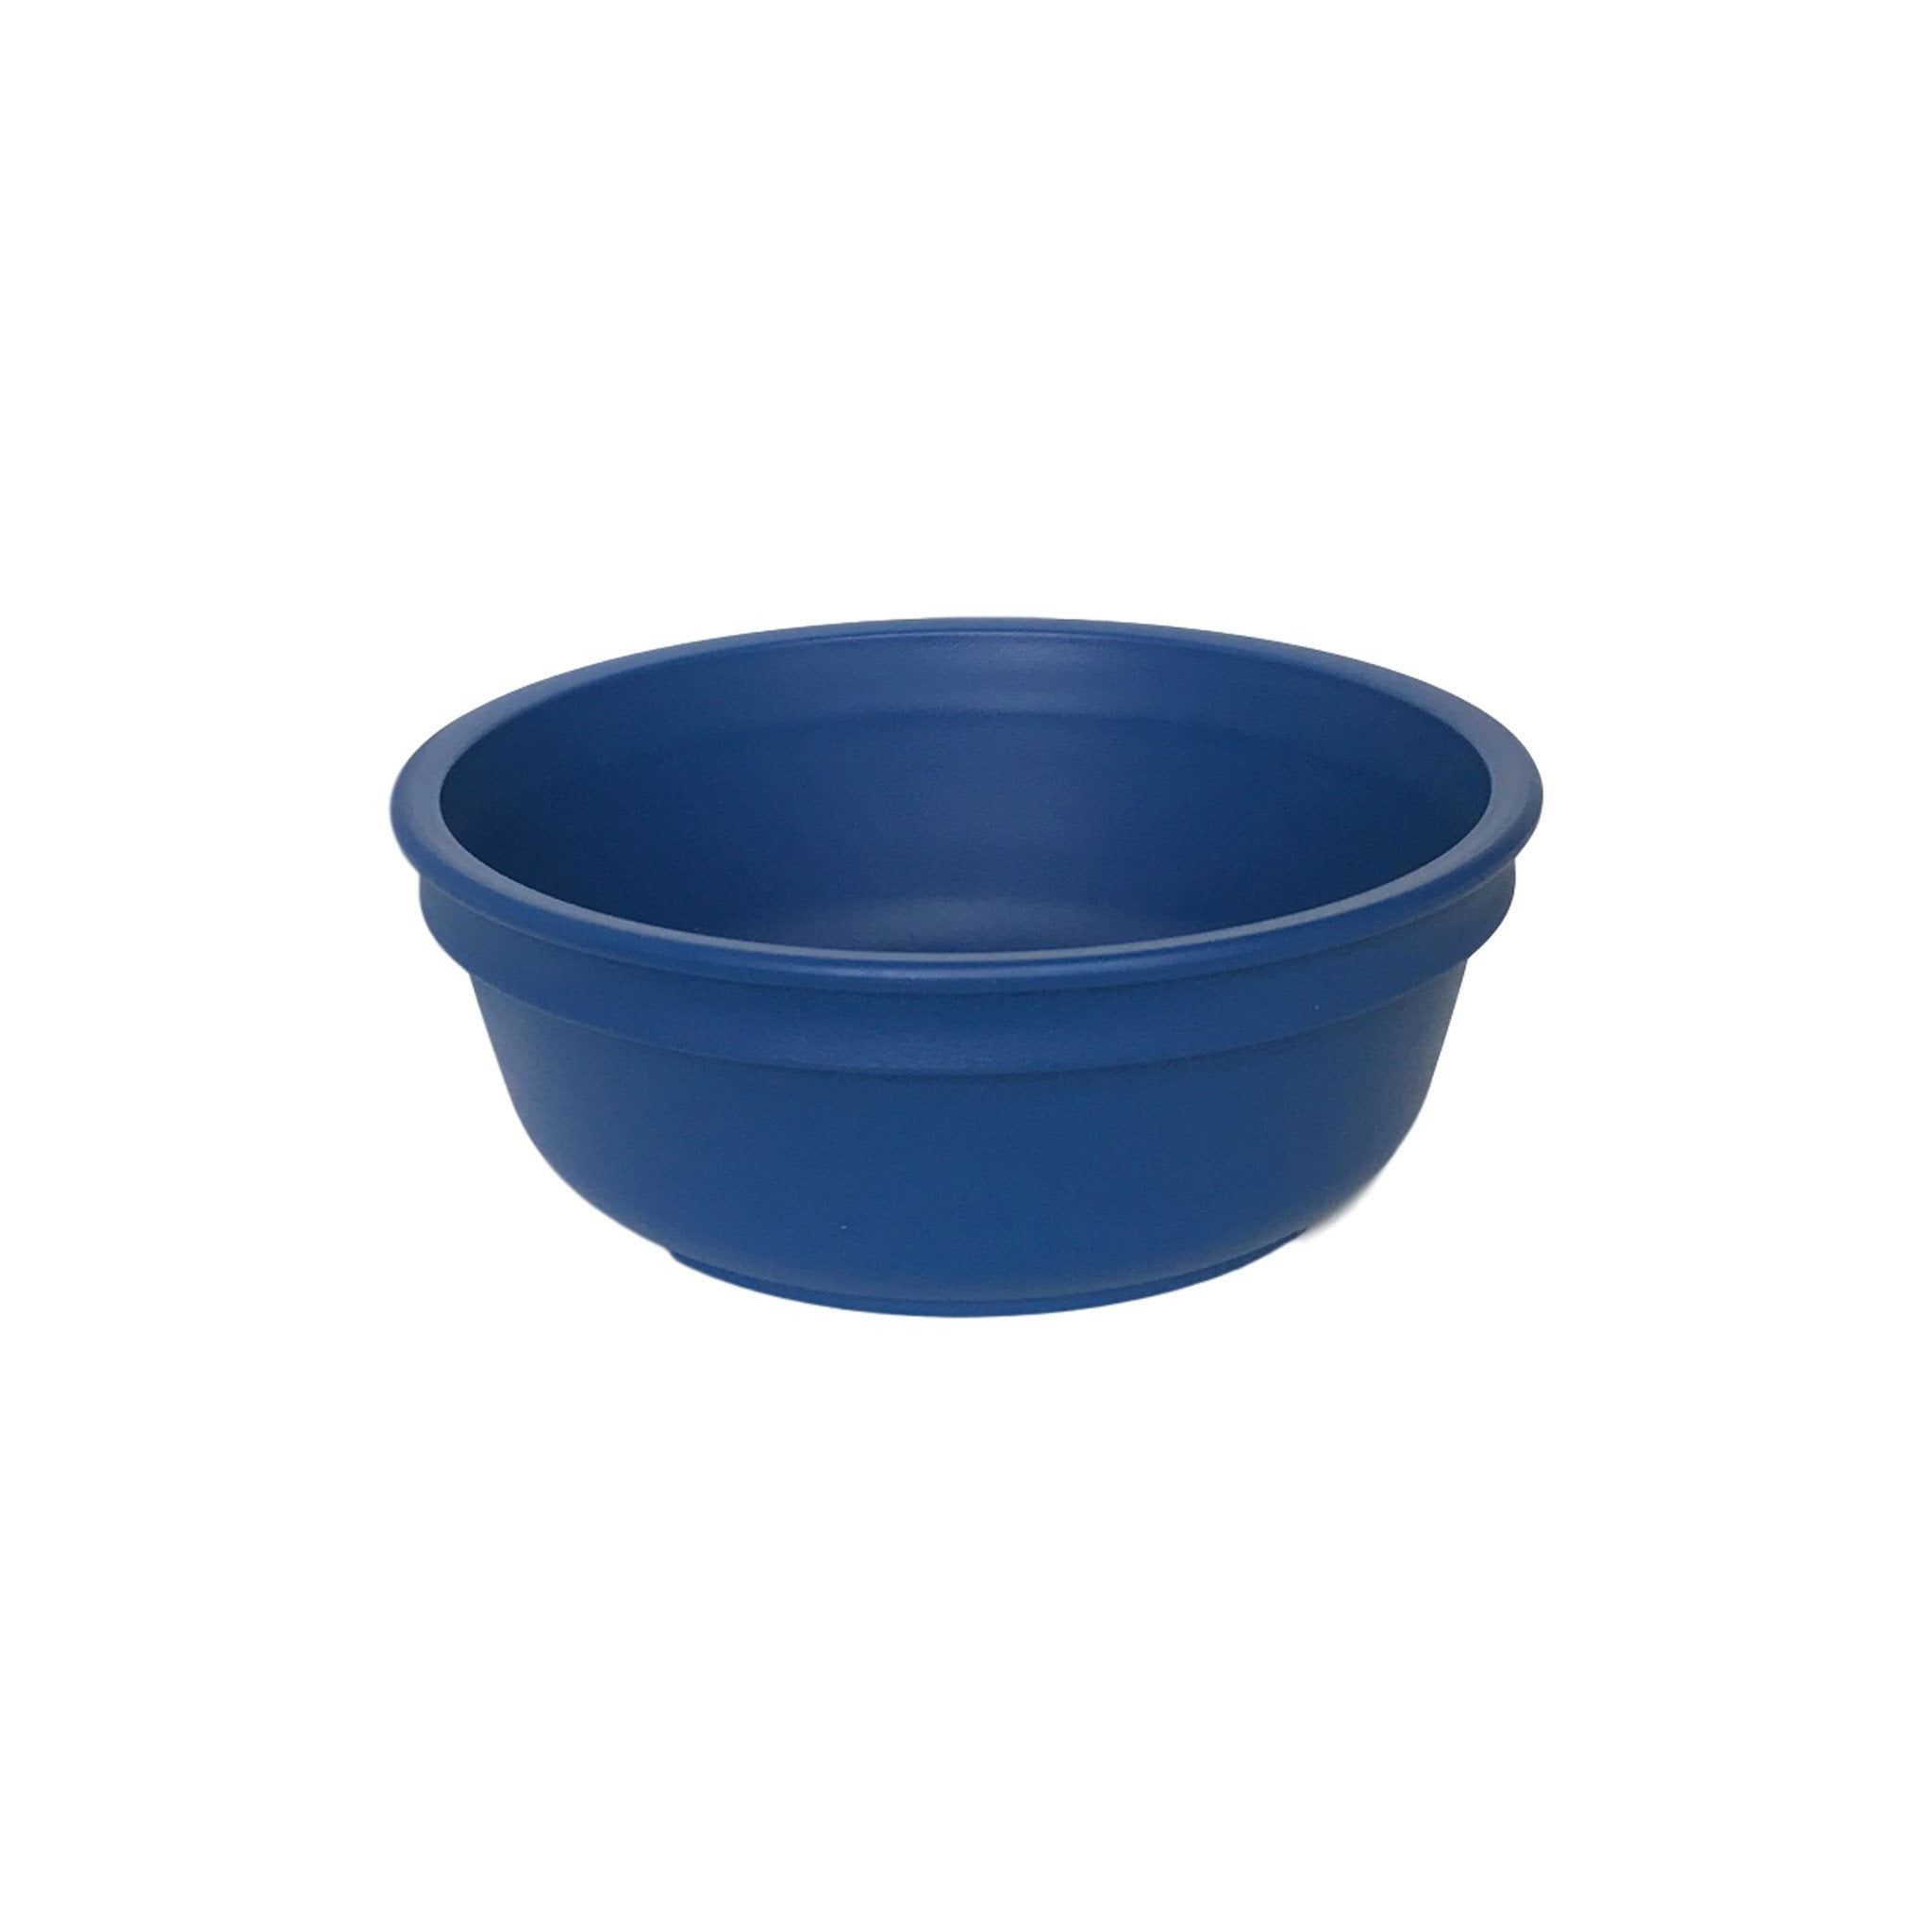 Replay Bowl Replay Lifestyle Navy Blue at Little Earth Nest Eco Shop